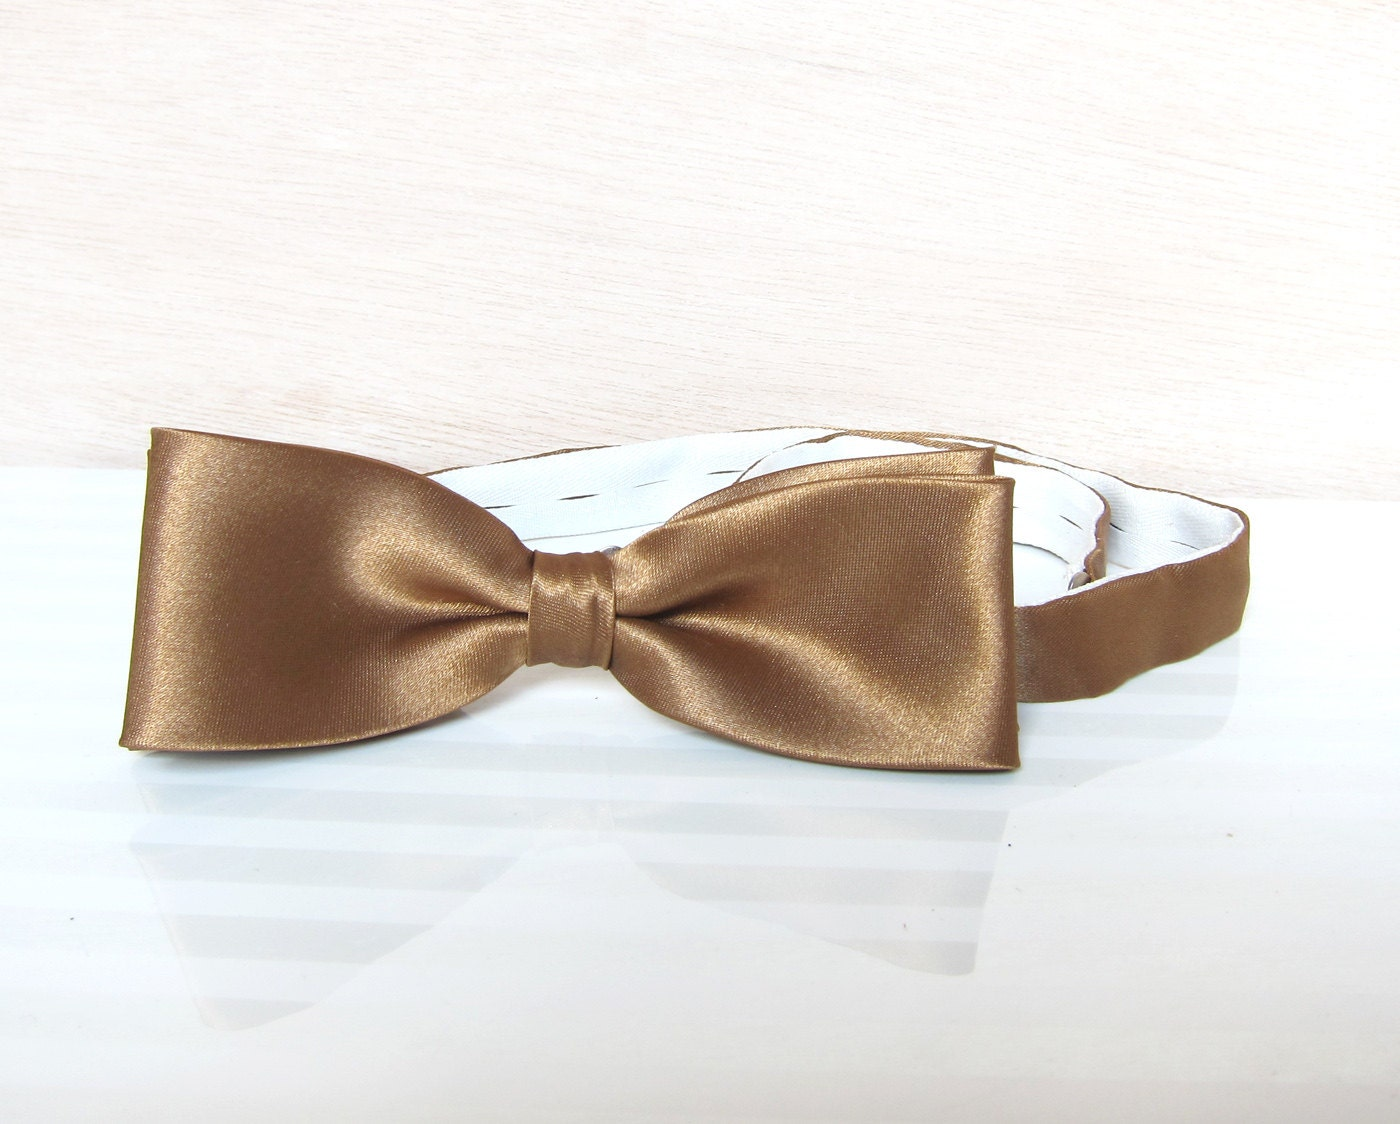 Vintage Gold Men's Bow, 90s Mens Satin Old Gold Bow Tie pre-tied - HappyEight